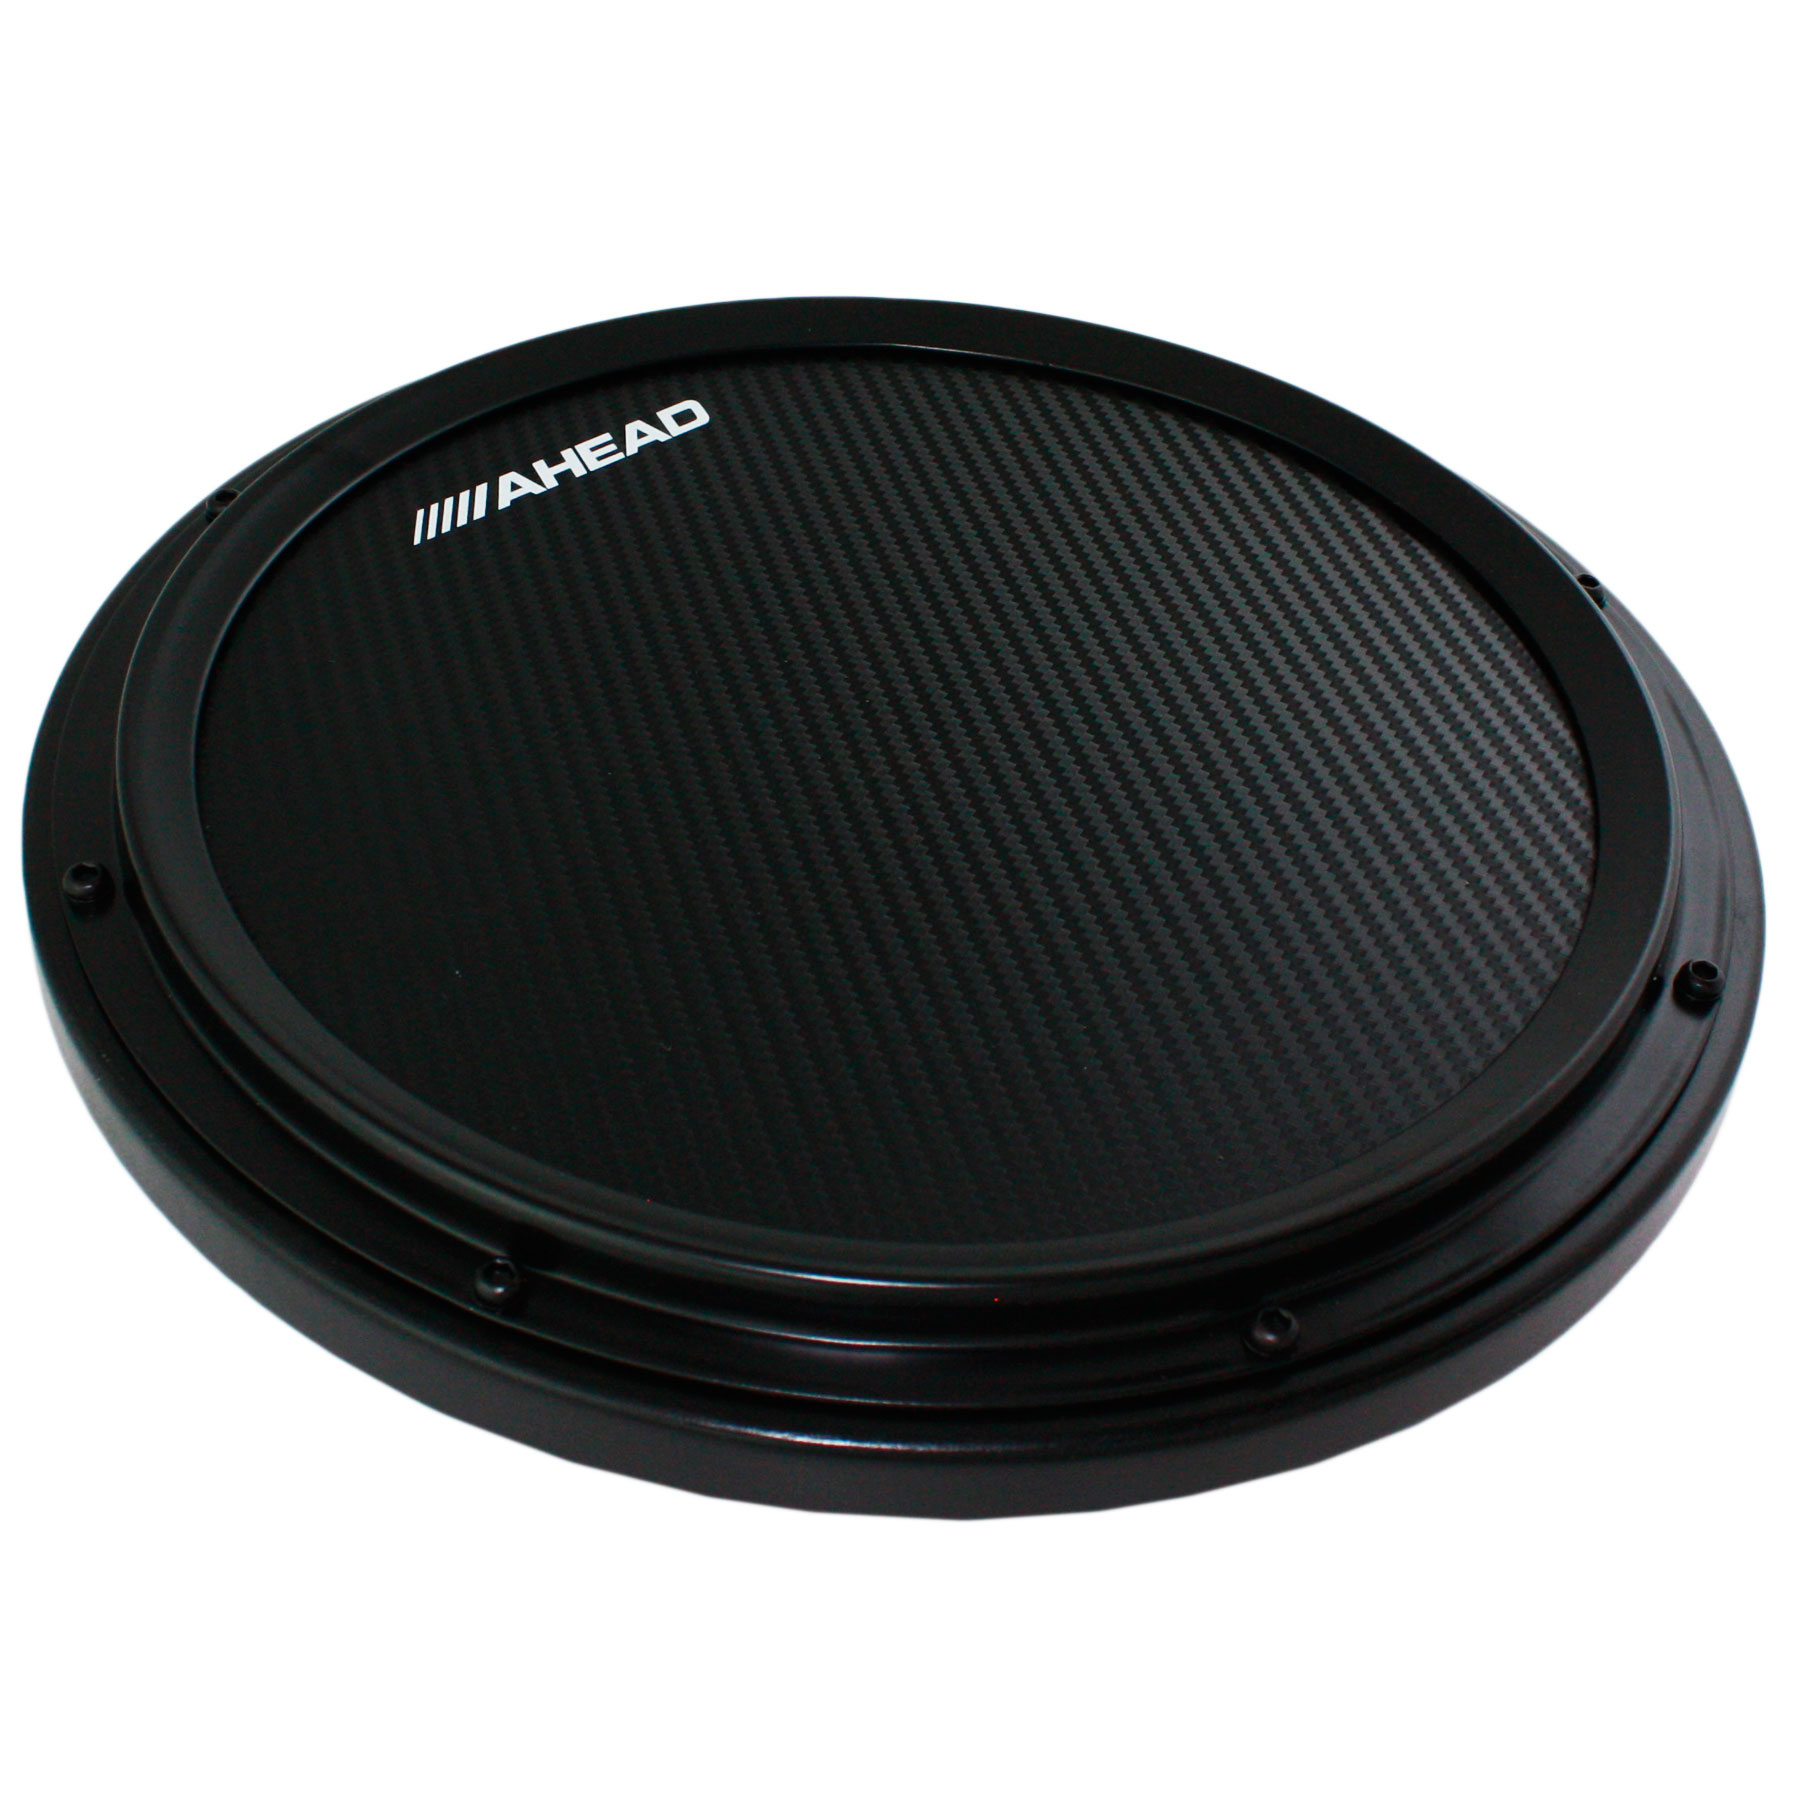 ahead 14 black s hoop marching practice pad with snare sound ahshp b. Black Bedroom Furniture Sets. Home Design Ideas